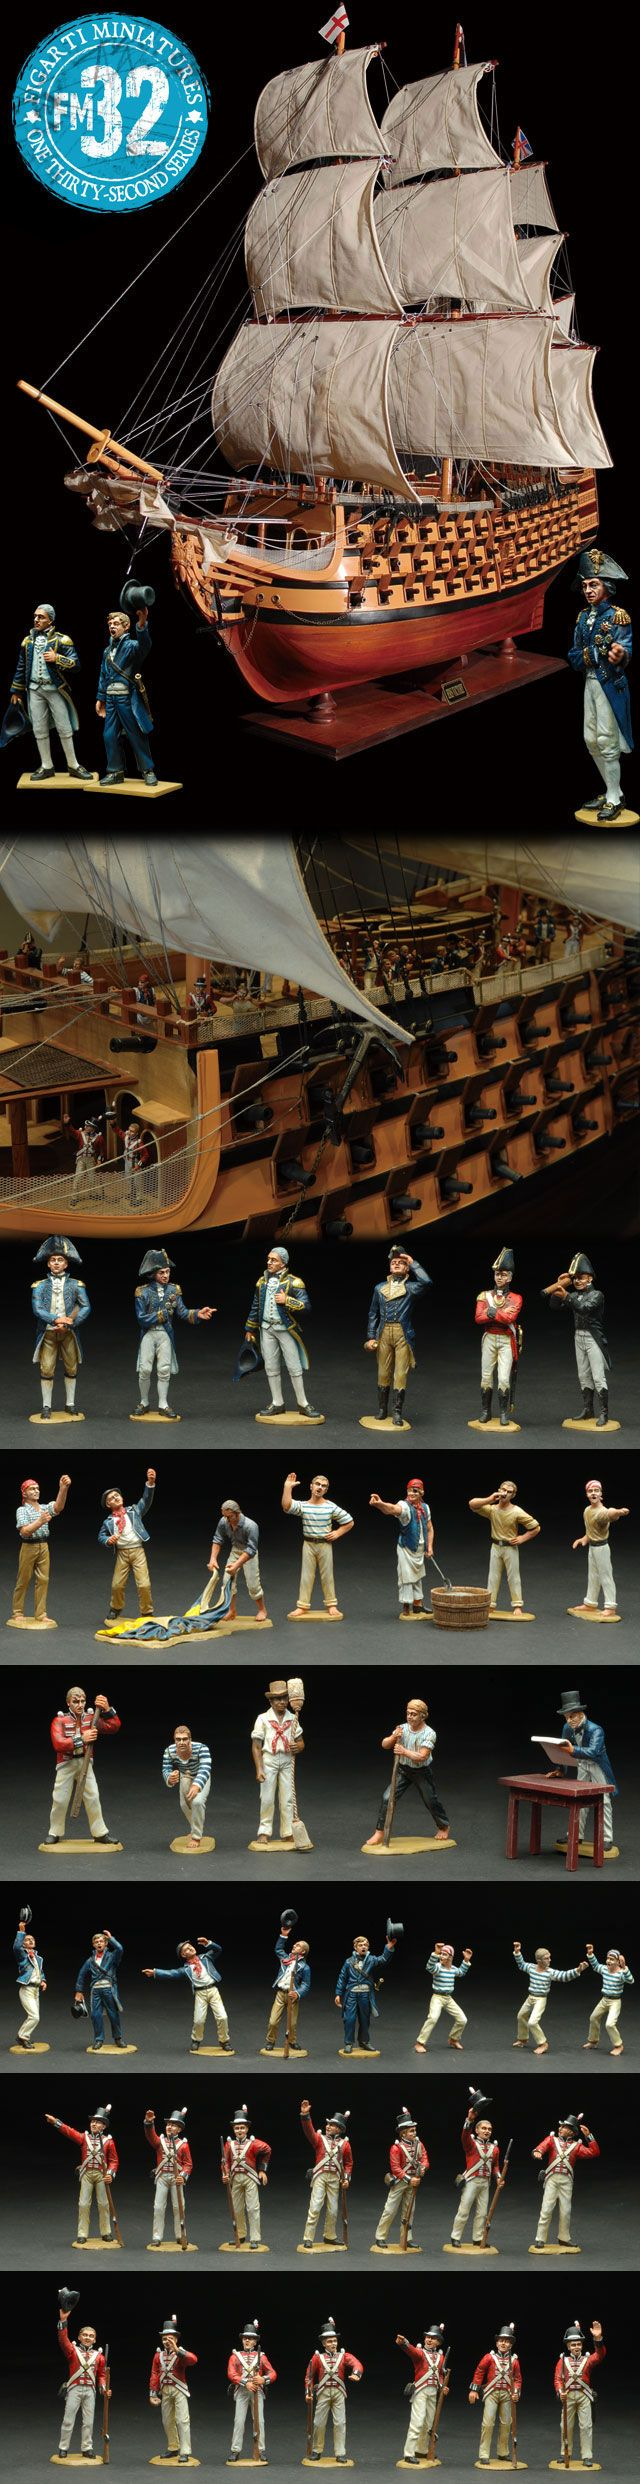 Figarti's - HMS Victory (HMS-01)